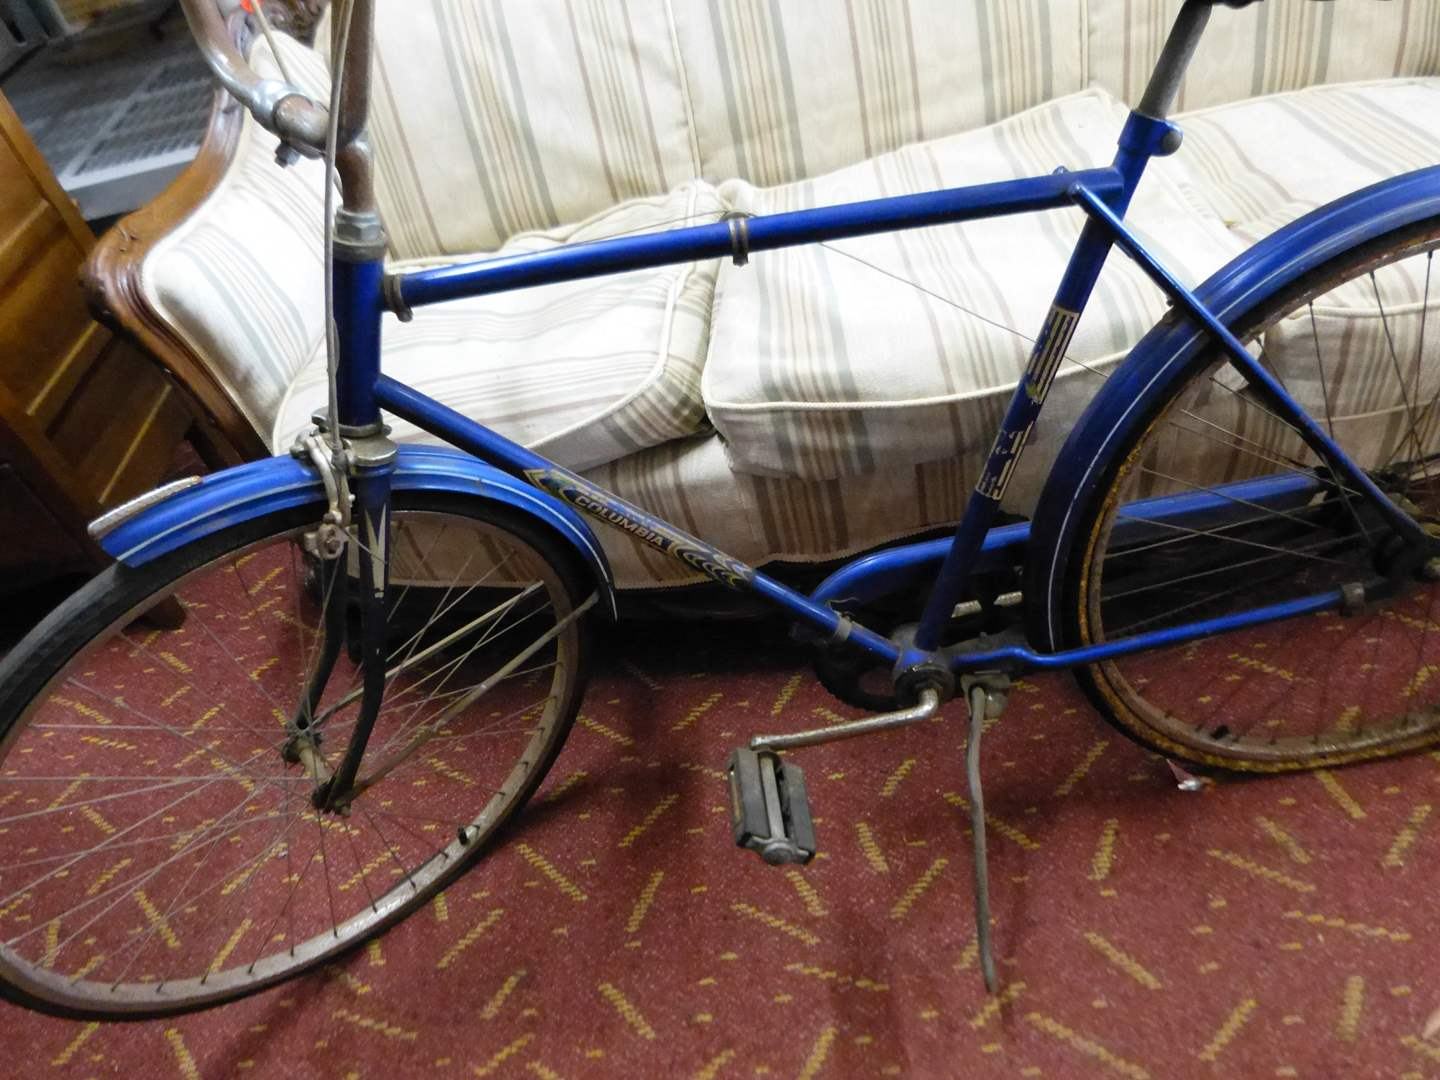 Lot # 295  Vintage Colombia Roadster bicycle (does't look pretty but HIGHLY collectible)